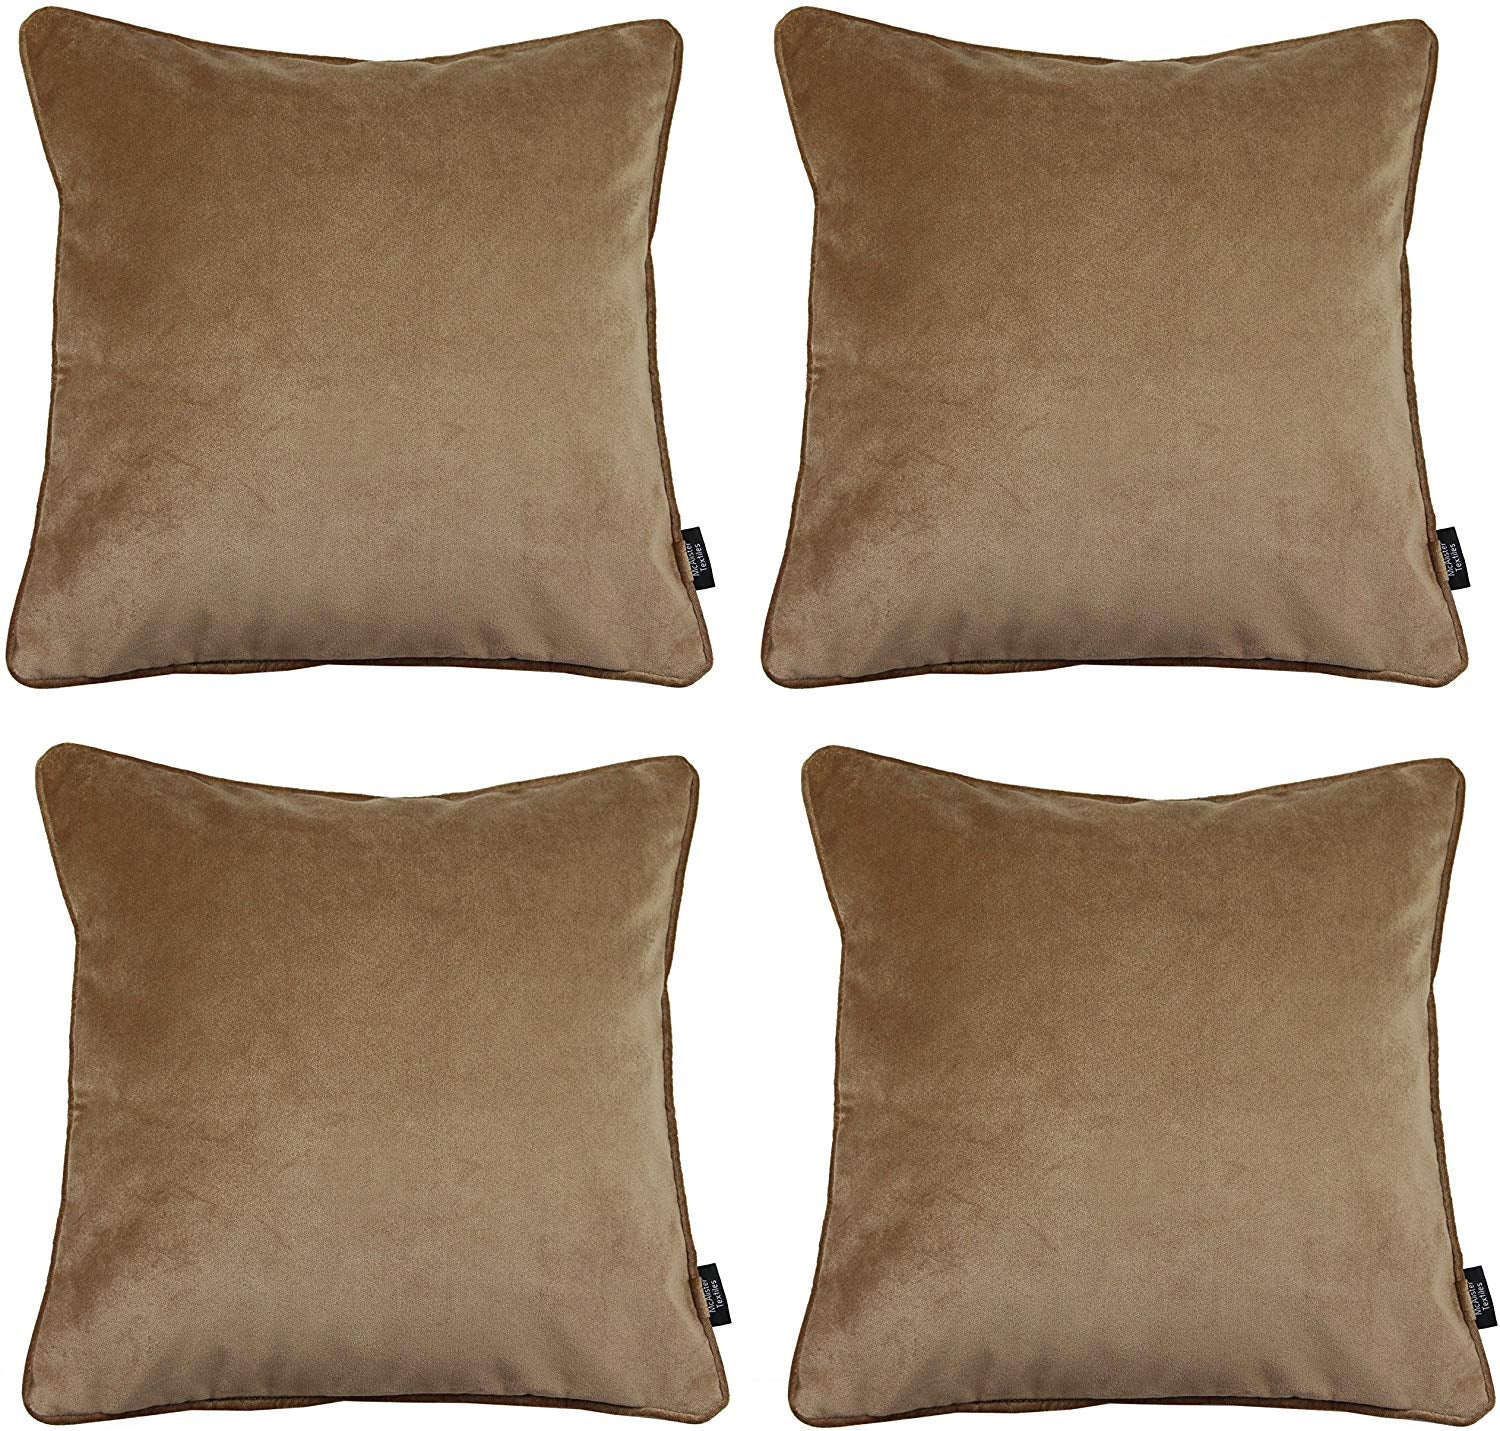 McAlister Textiles Matt Caramel Gold Velvet 43cm x 43cm Cushion Sets Cushions and Covers Cushion Covers Set of 4